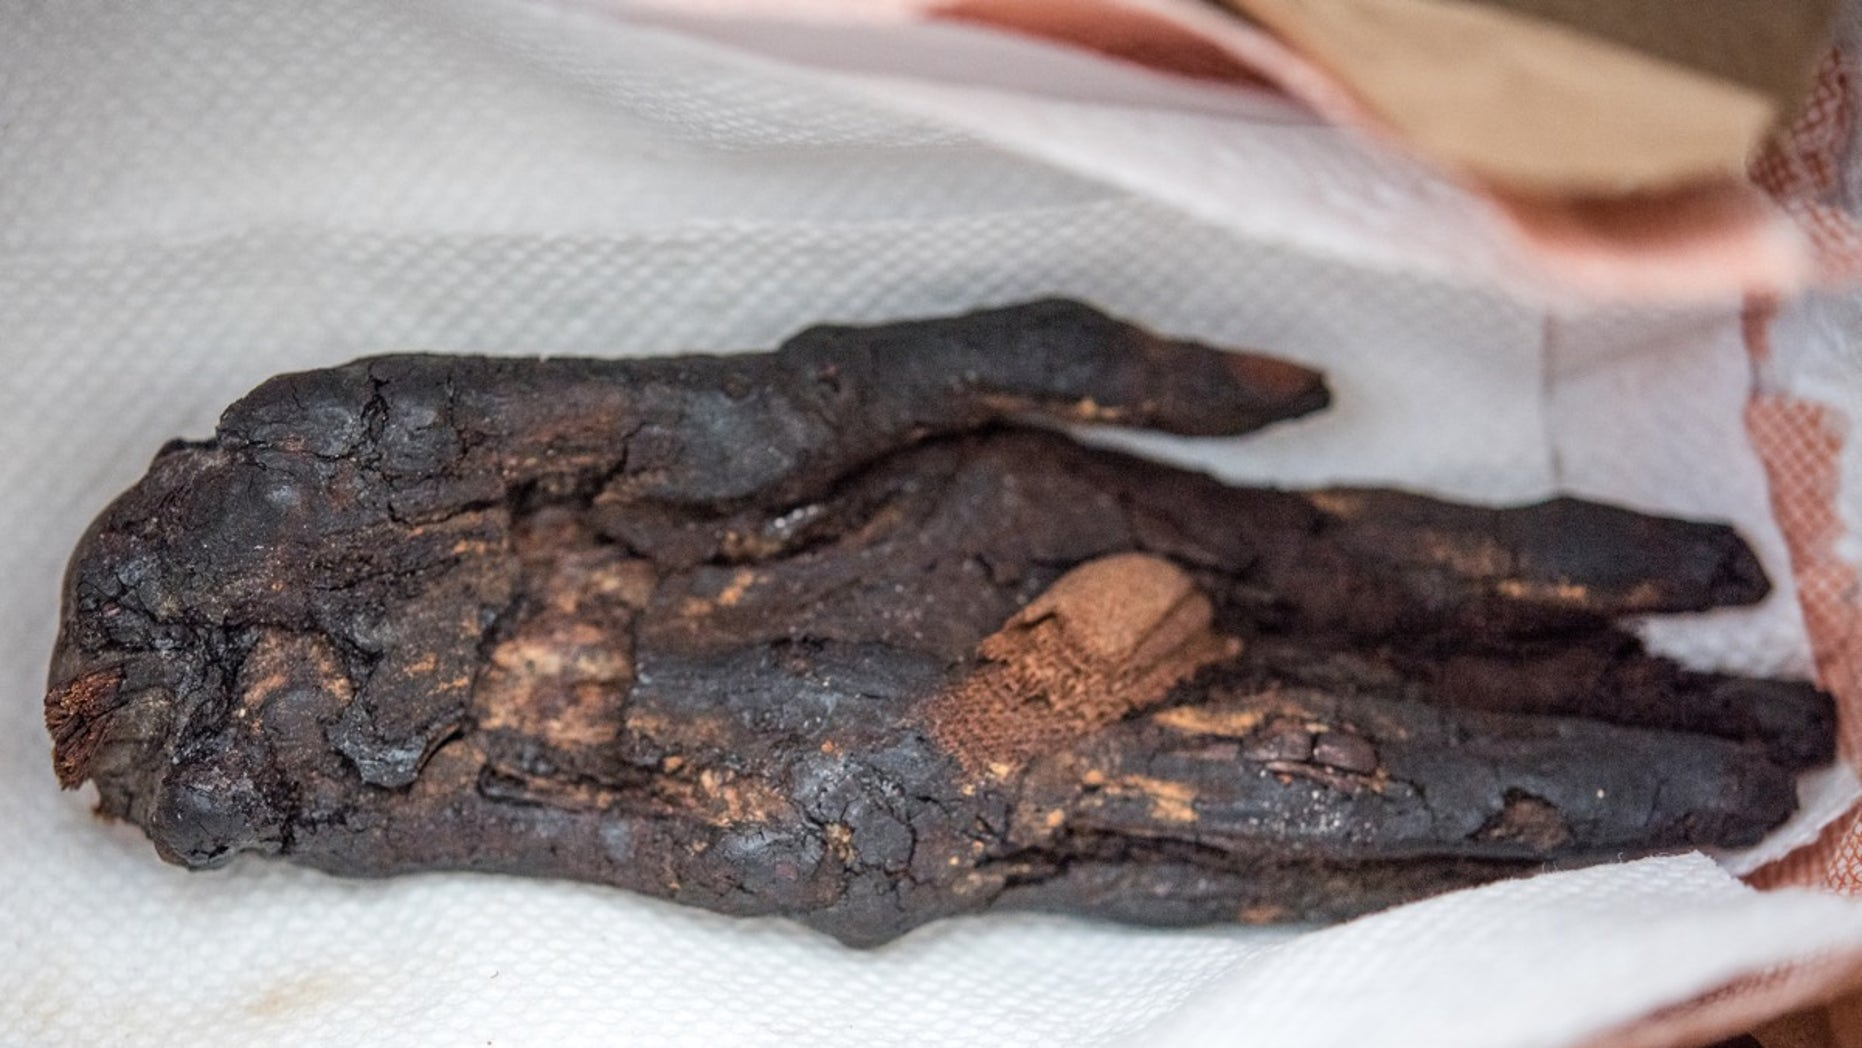 This mummy hand, from the eighth century B.C., had been smuggled into the United States from Egypt.